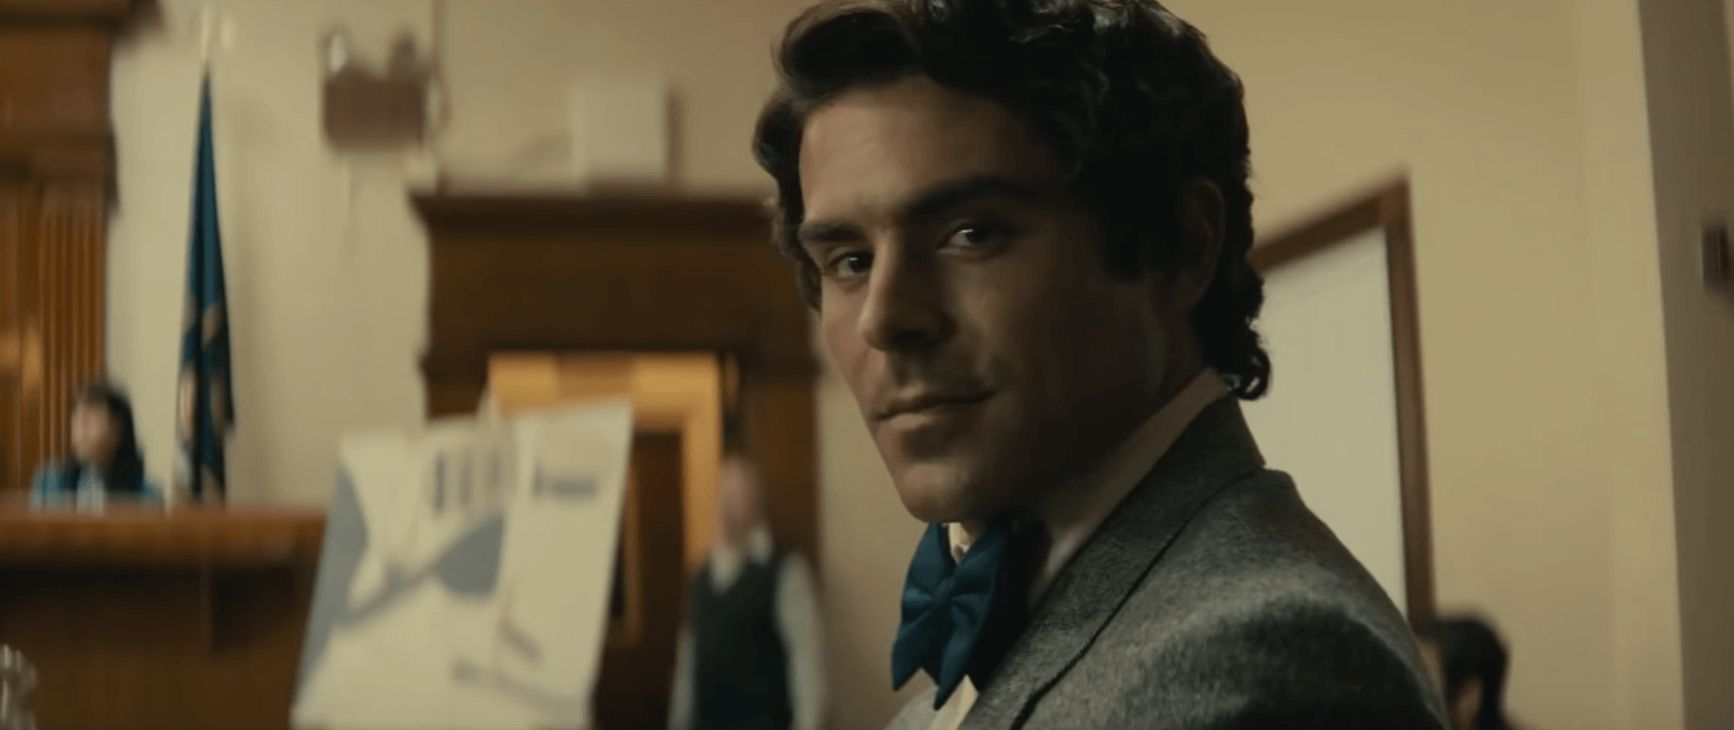 Image may contain: Zac Efron Ted Bundy film, Zac Efron, Ted Bundy, Netflix, True Crime, Apparel, Overcoat, Coat, Clothing, Suit, Man, Face, Human, Person